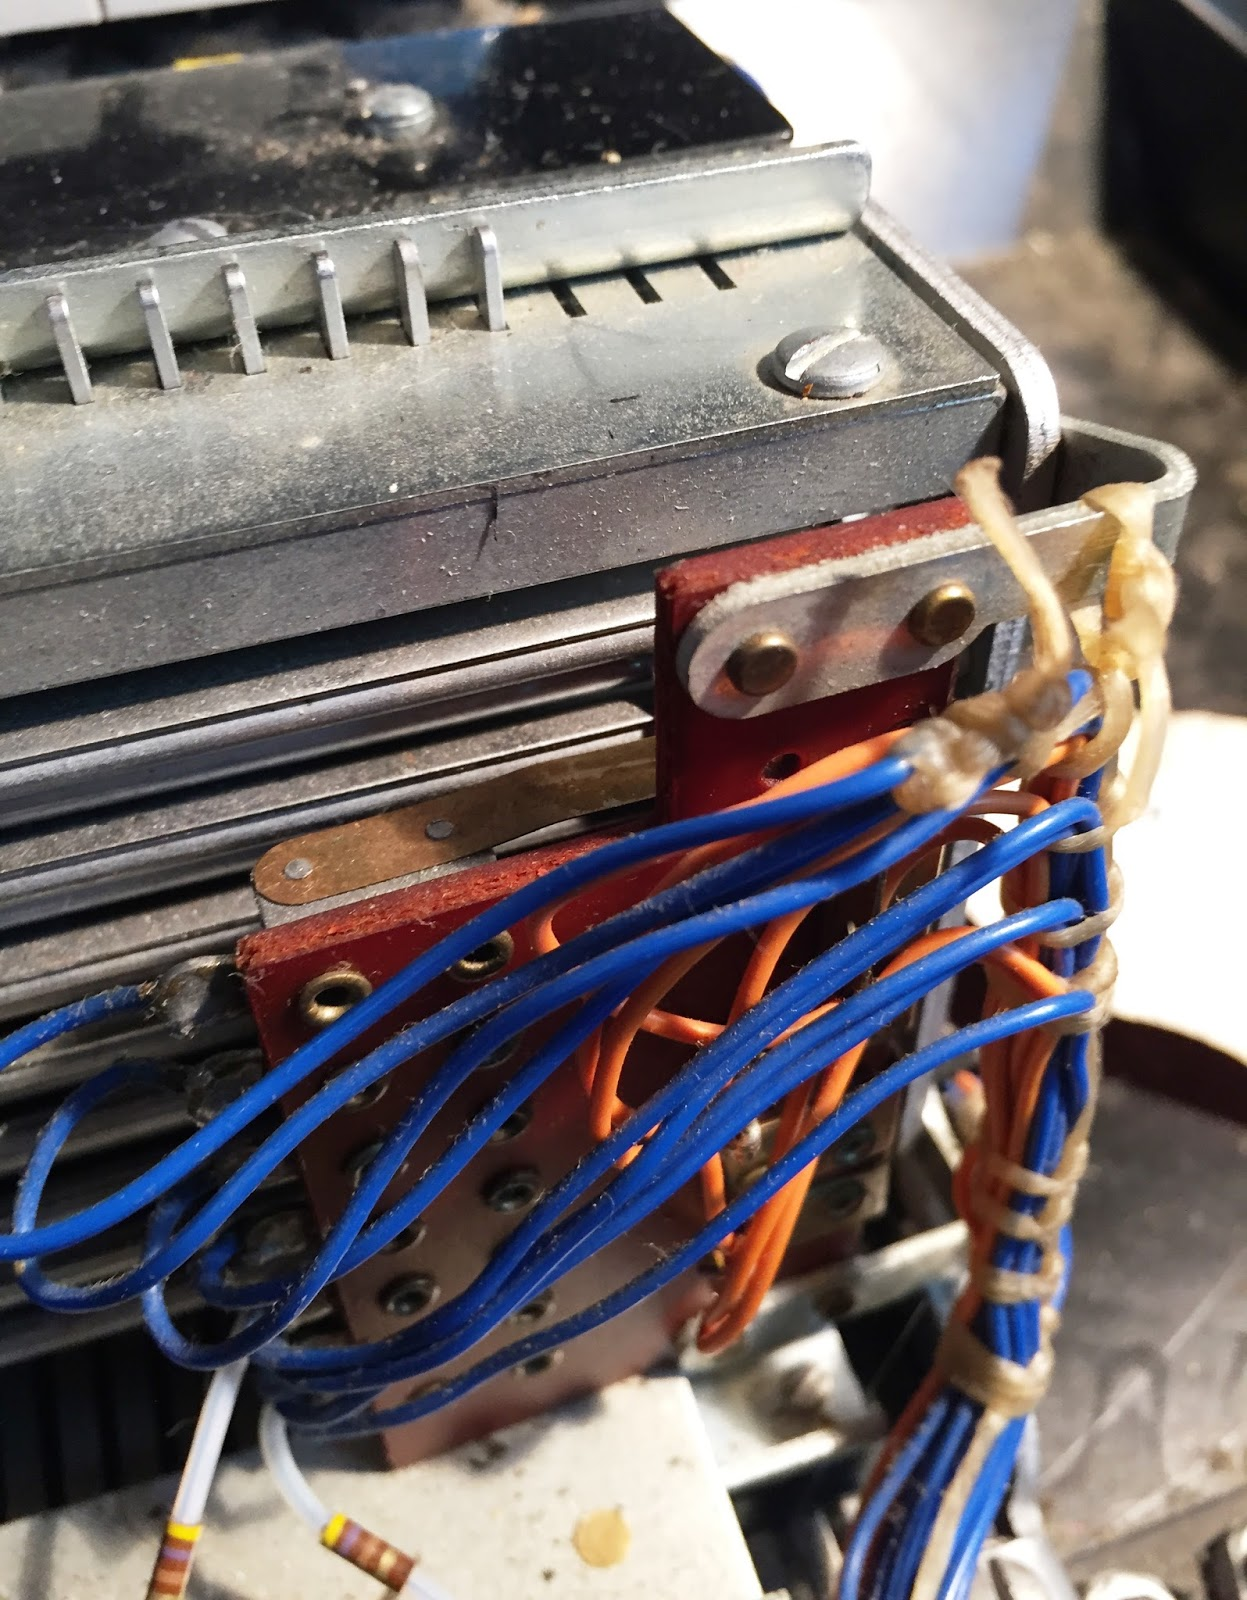 Rescue 1130 2014 Pickup Of An Ibm System And More September 2015 Python 1401 Wiring Diagram Back A Set Bails